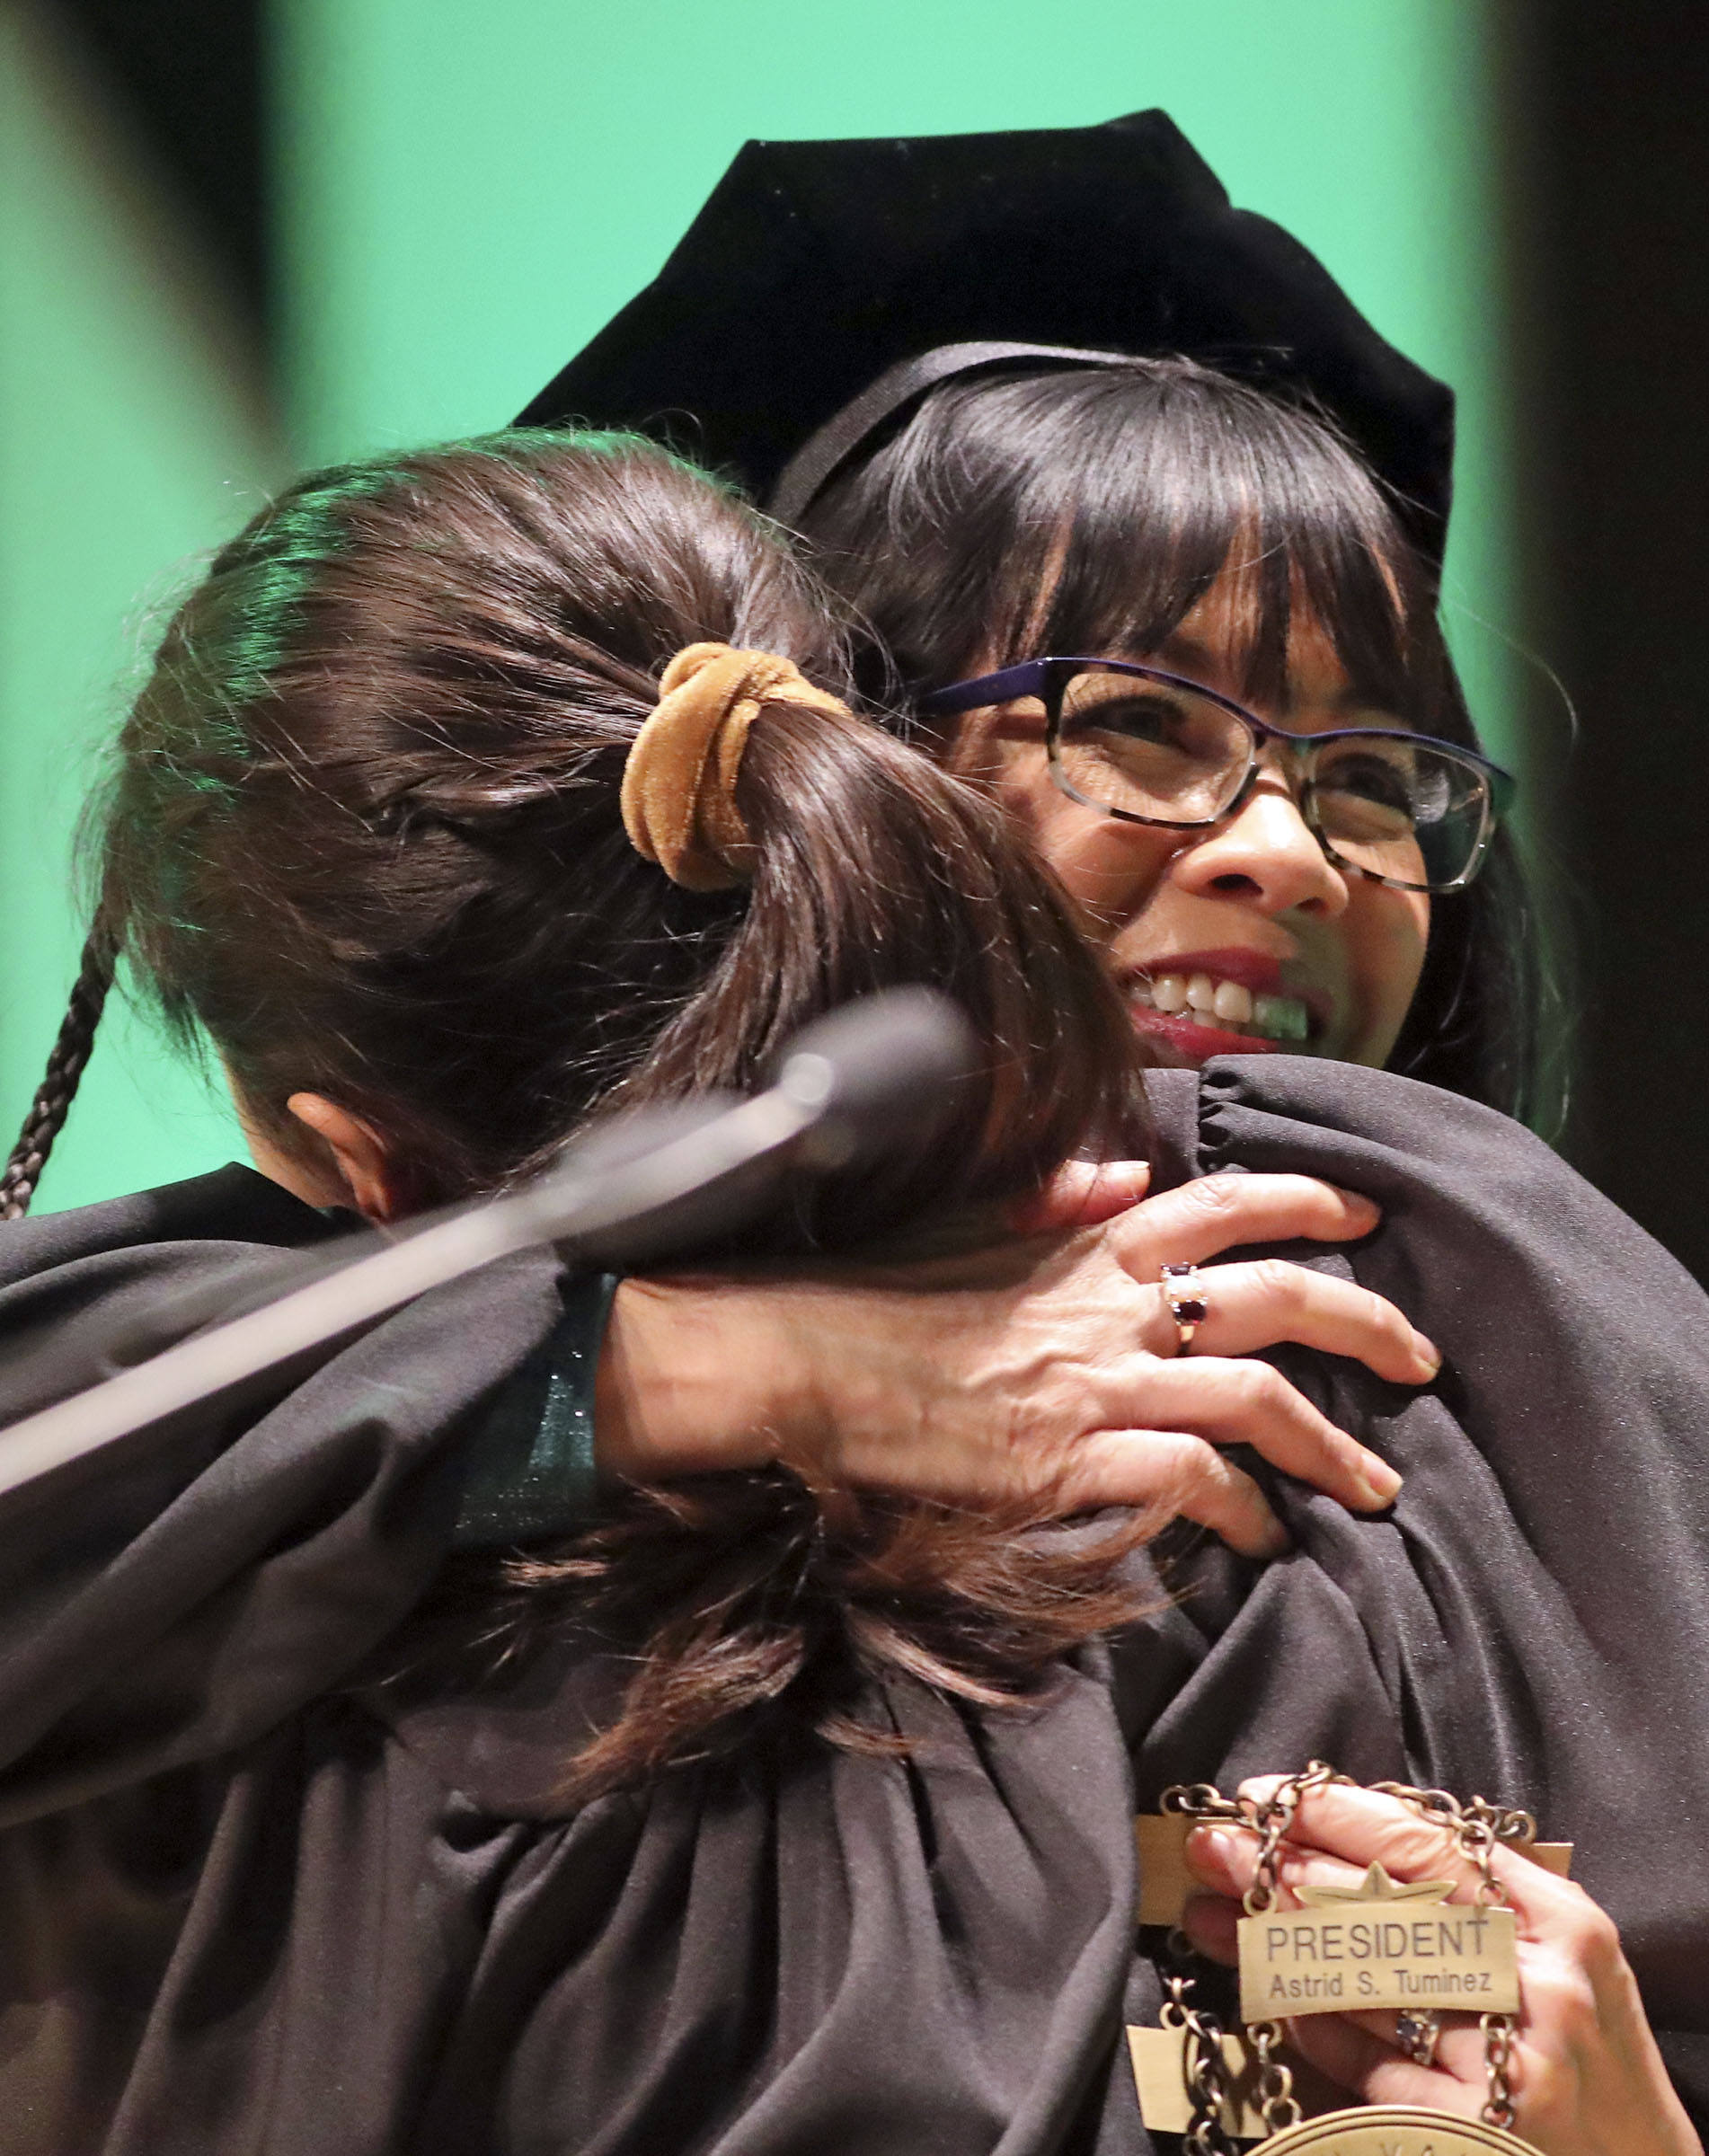 Michal Tuminez Tolk hugs her mother, Astrid S. Tuminez, Utah Valley University's seventh president, during the inauguration ceremony for Tuminez at the UVU Noorda Center for the Performing Arts in Orem on Wednesday, March 27, 2019.